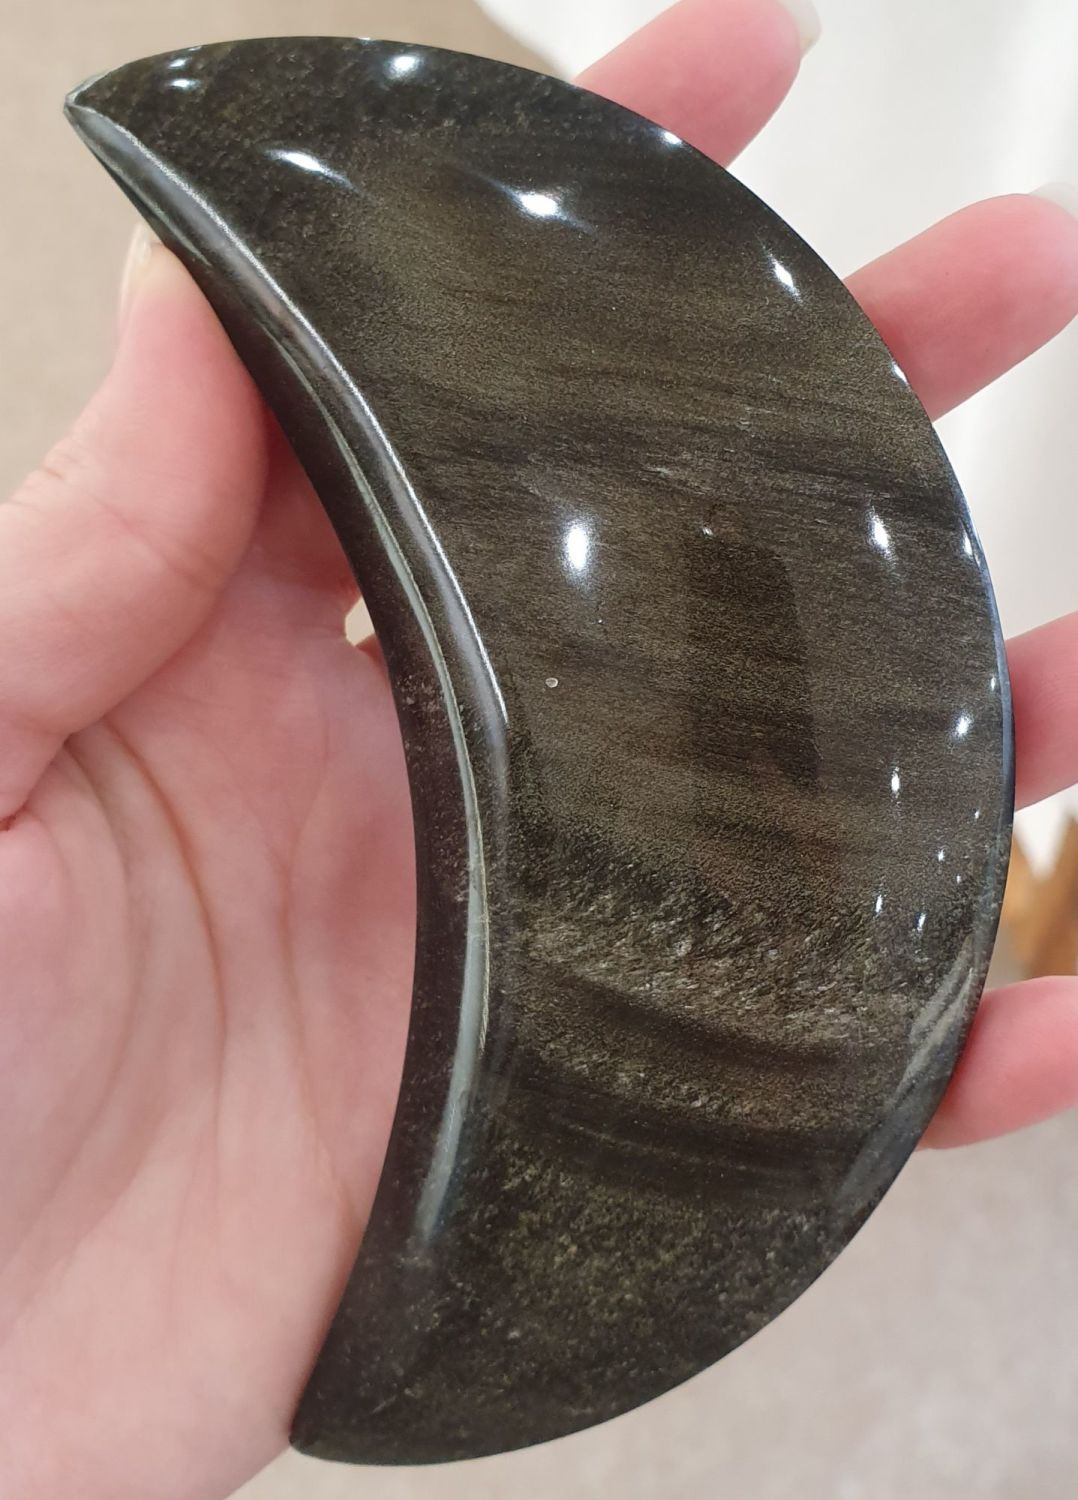 Velvet Obsidian Moon with Release and Protect oil